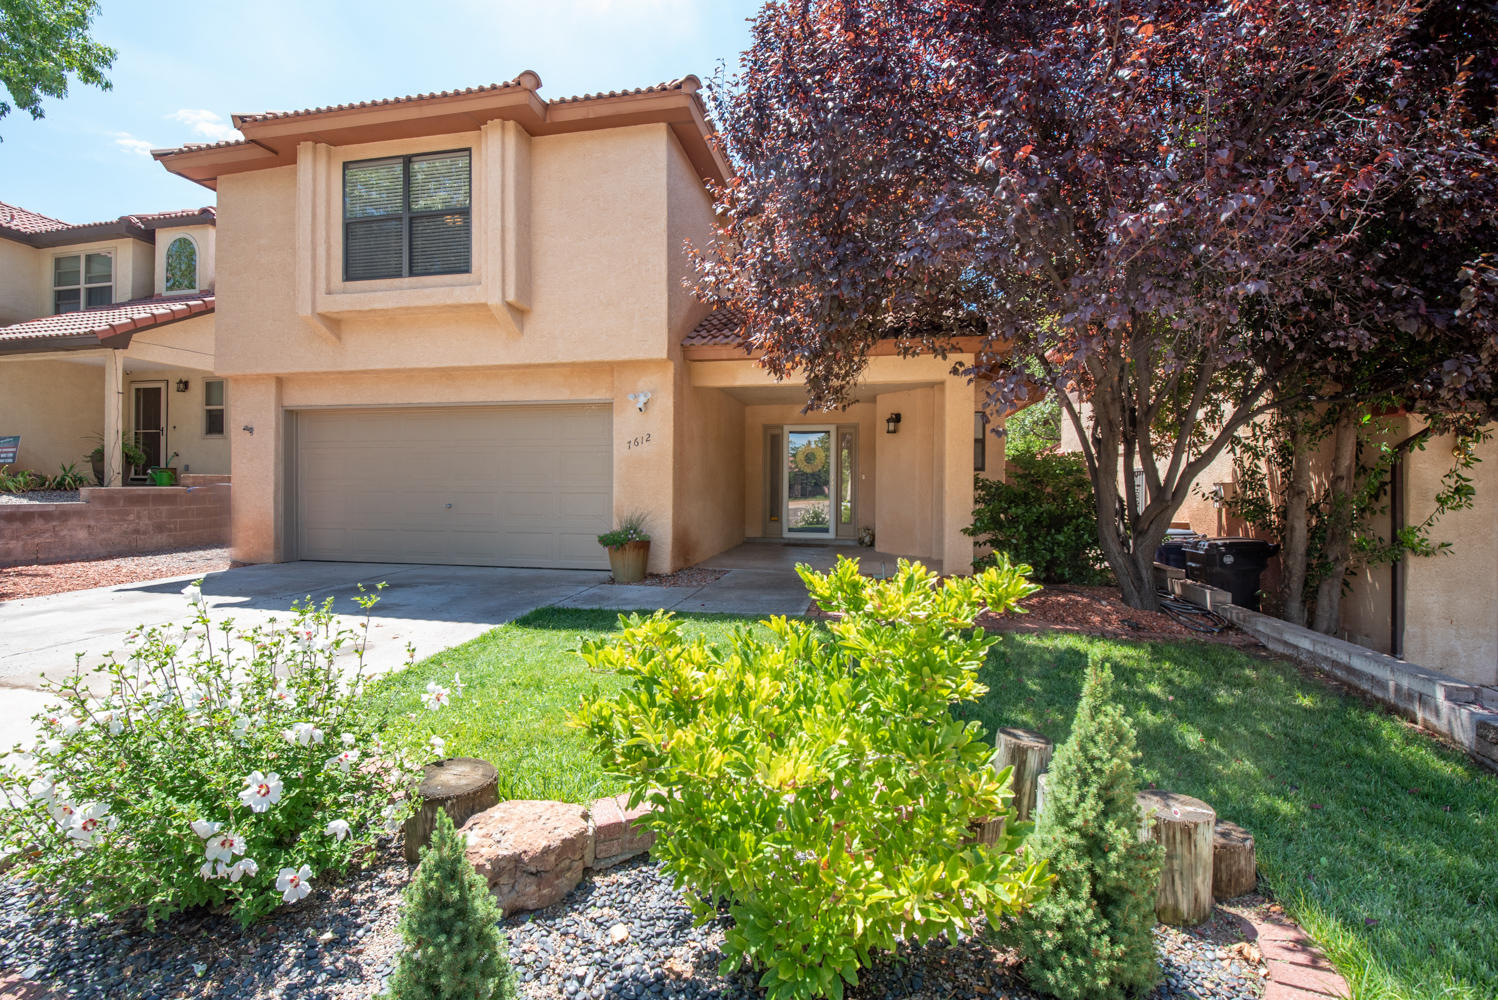 7612 OAKLAND Avenue NE Property Photo - Albuquerque, NM real estate listing